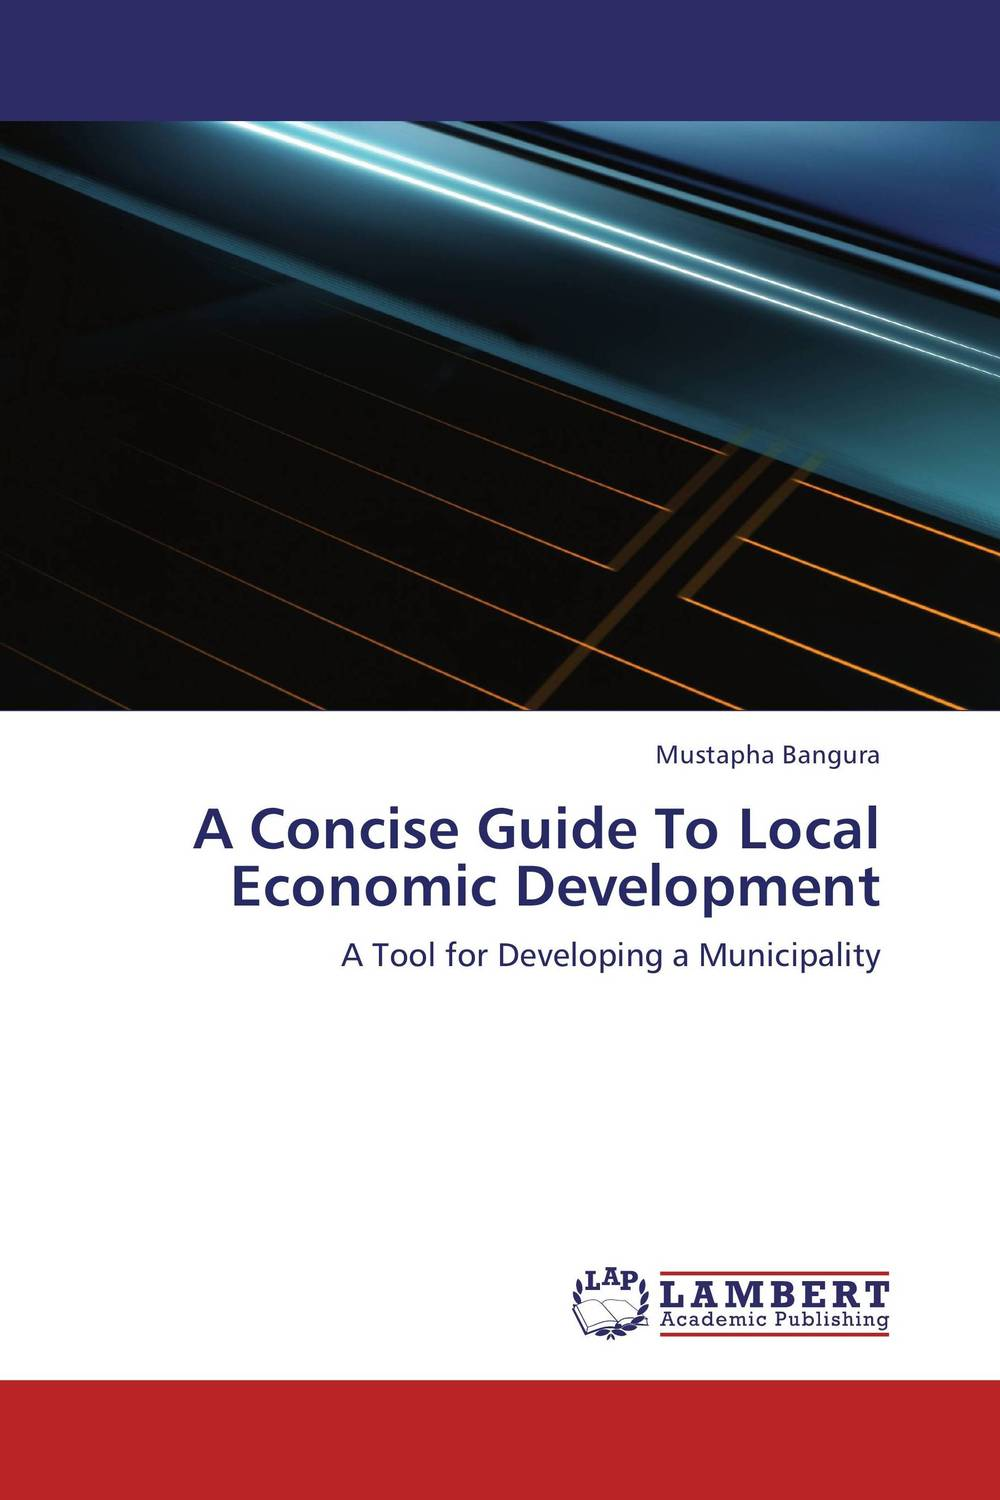 A Concise Guide To Local Economic Development david powell j the trader s guide to the euro area economic indicators the ecb and the euro crisis